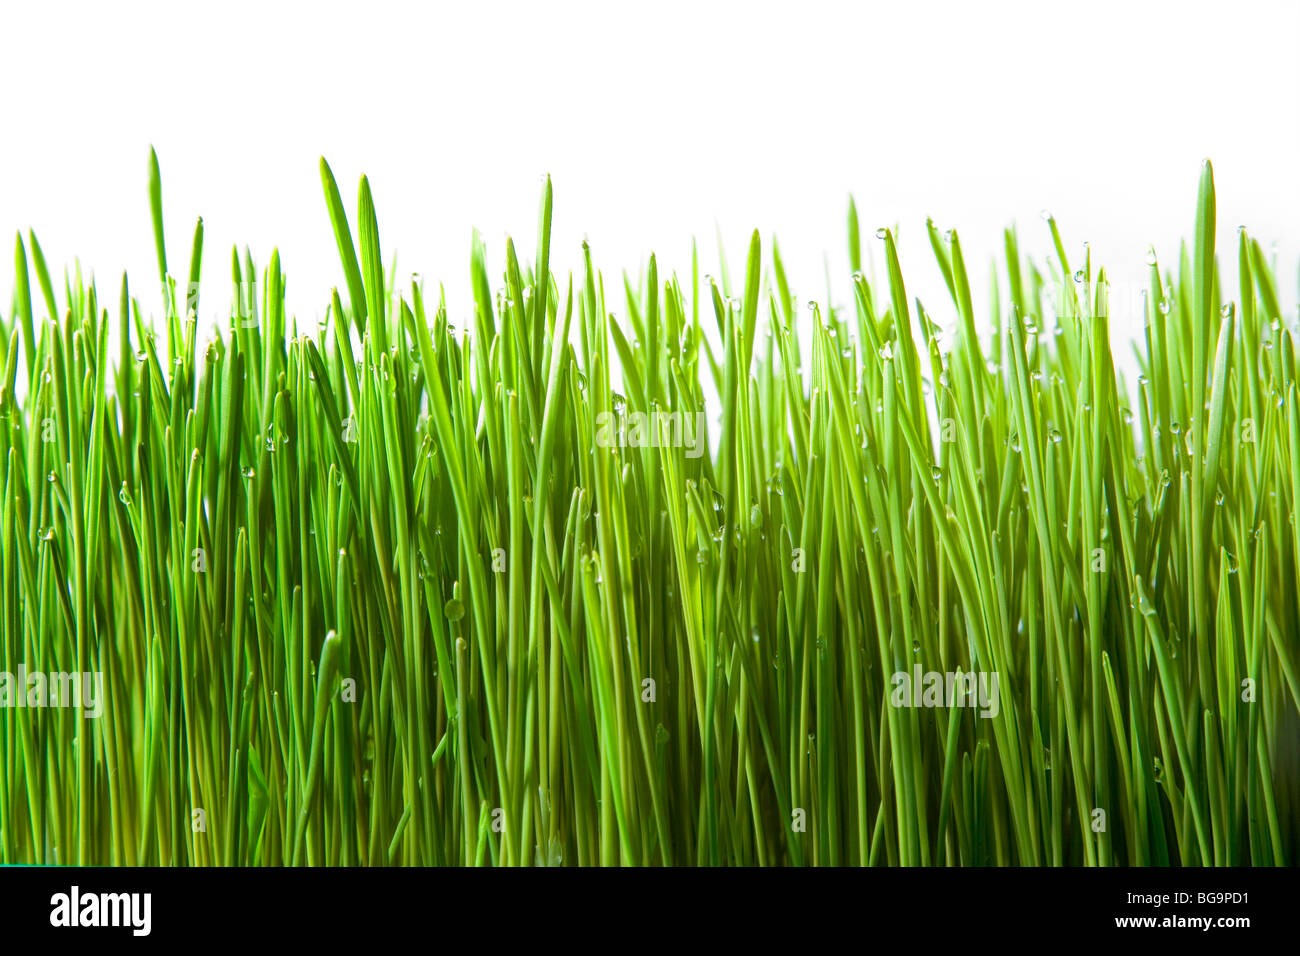 Fresh Green Wheatgrass Growing, on White Background - Stock Image